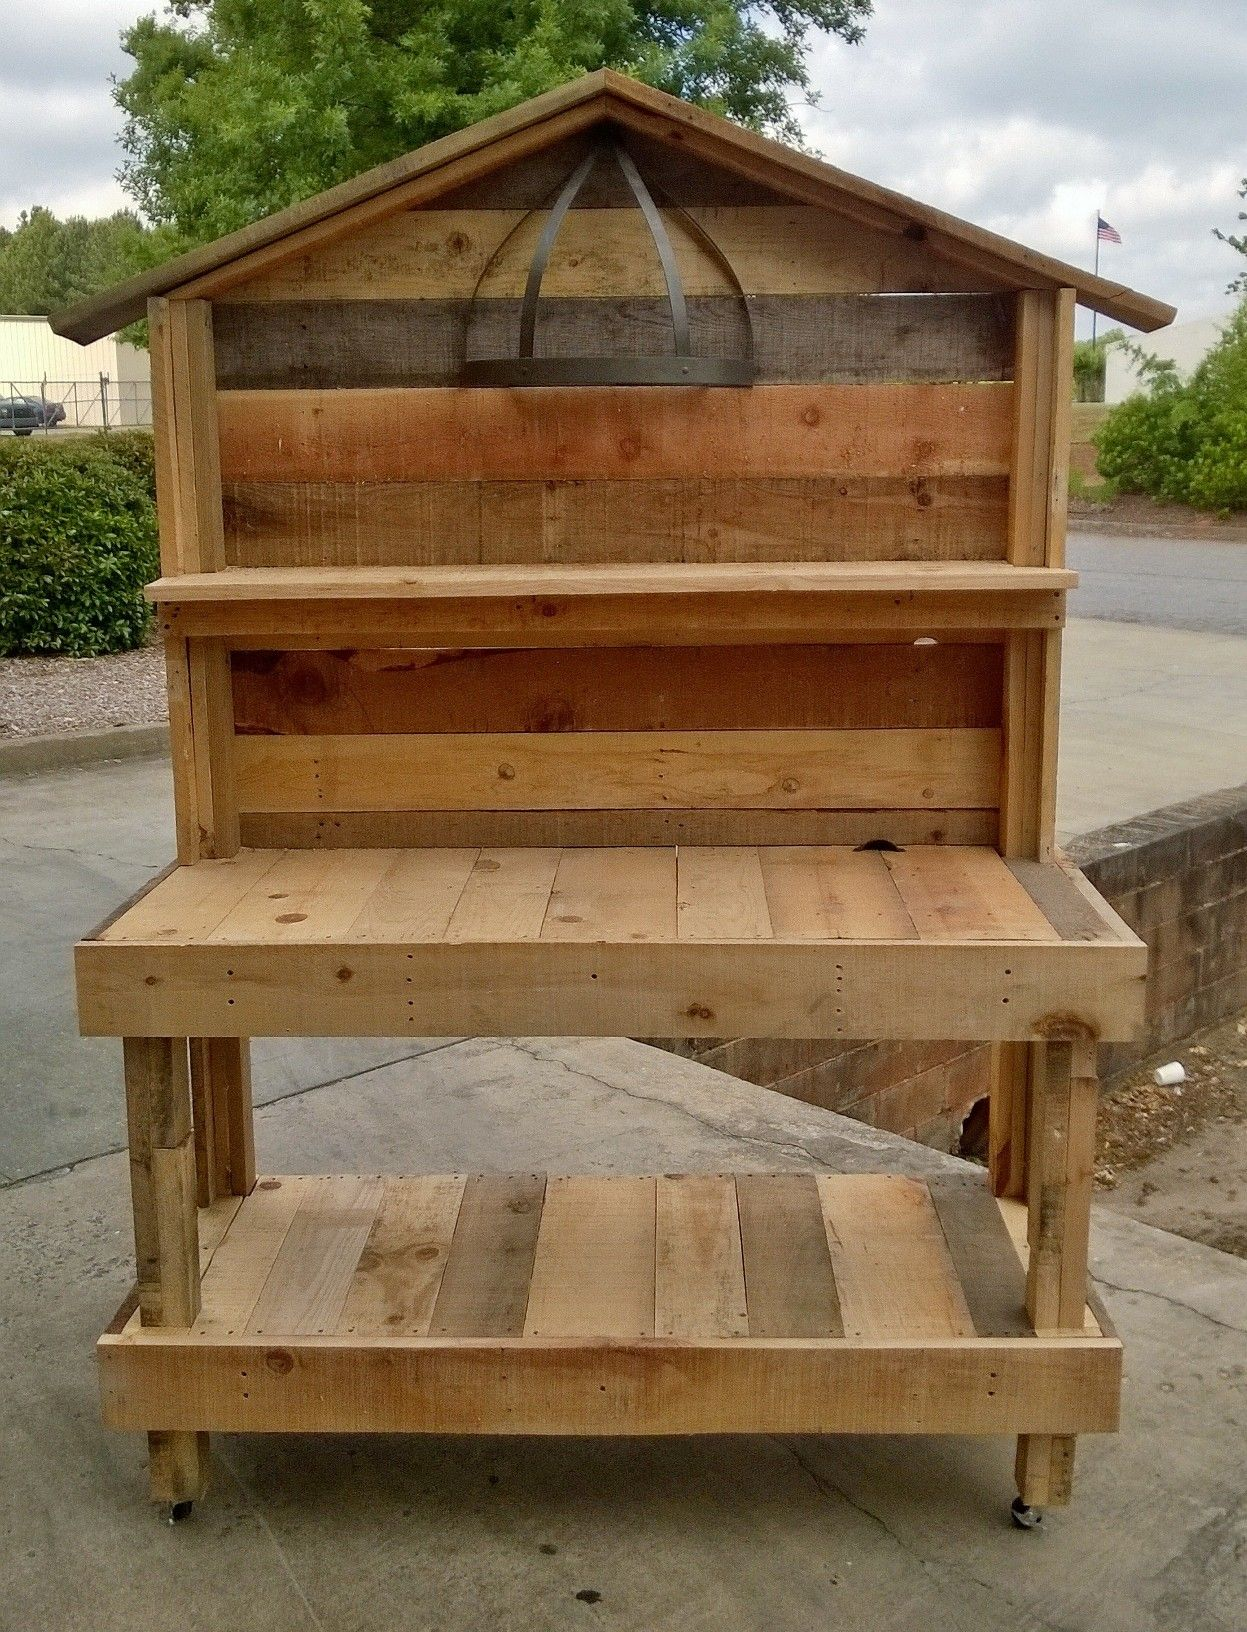 An upcycled garden work bench that I